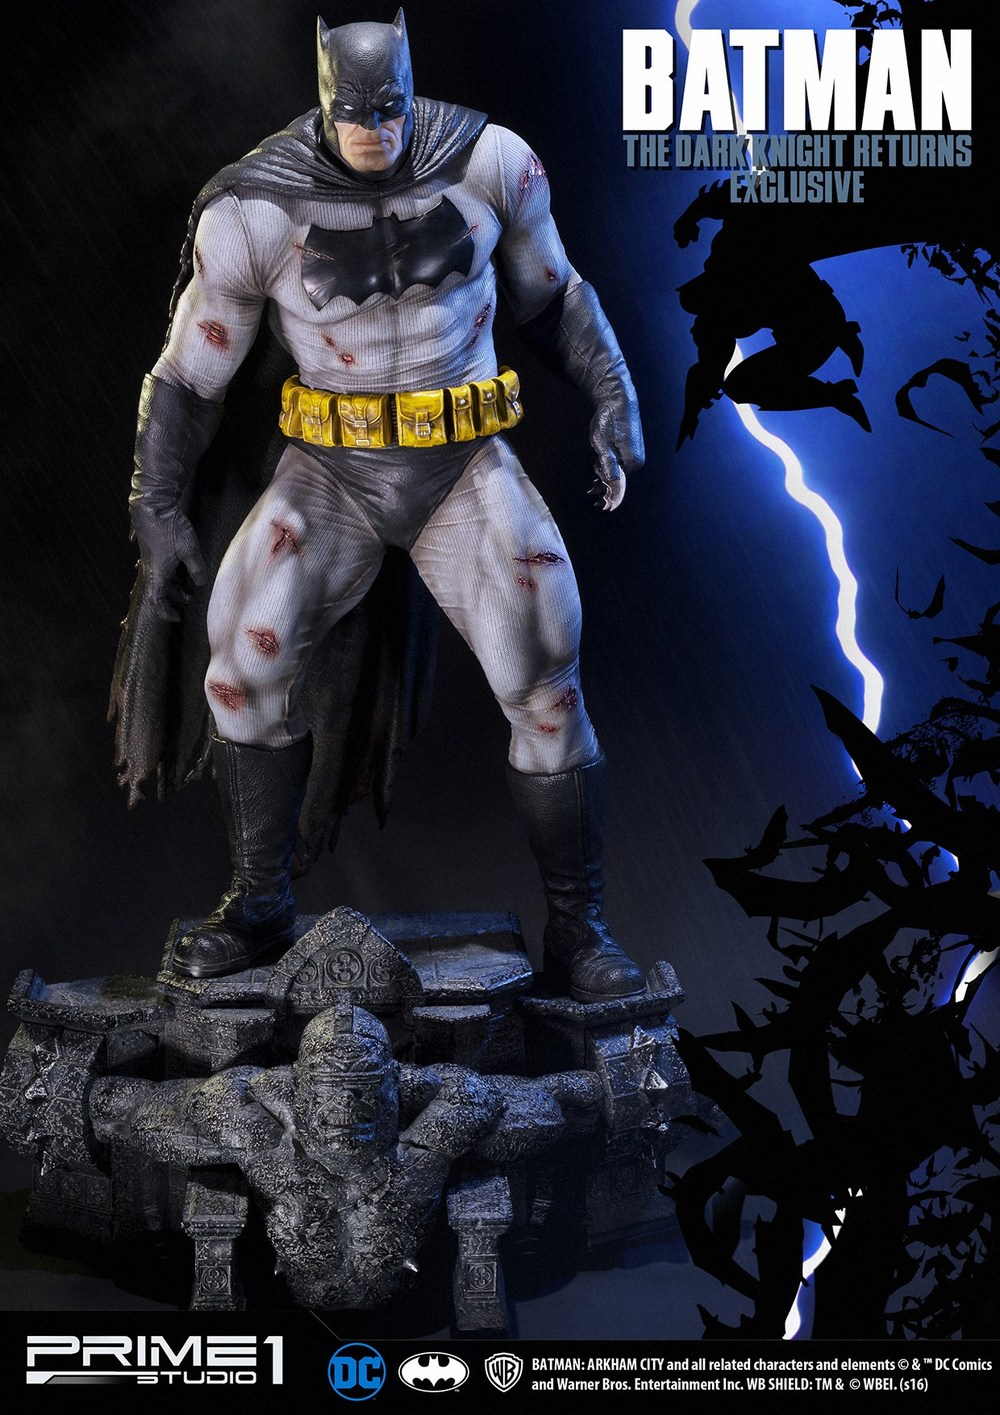 Prime-1-Dark-Knight-Returns-Batman-028.jpg